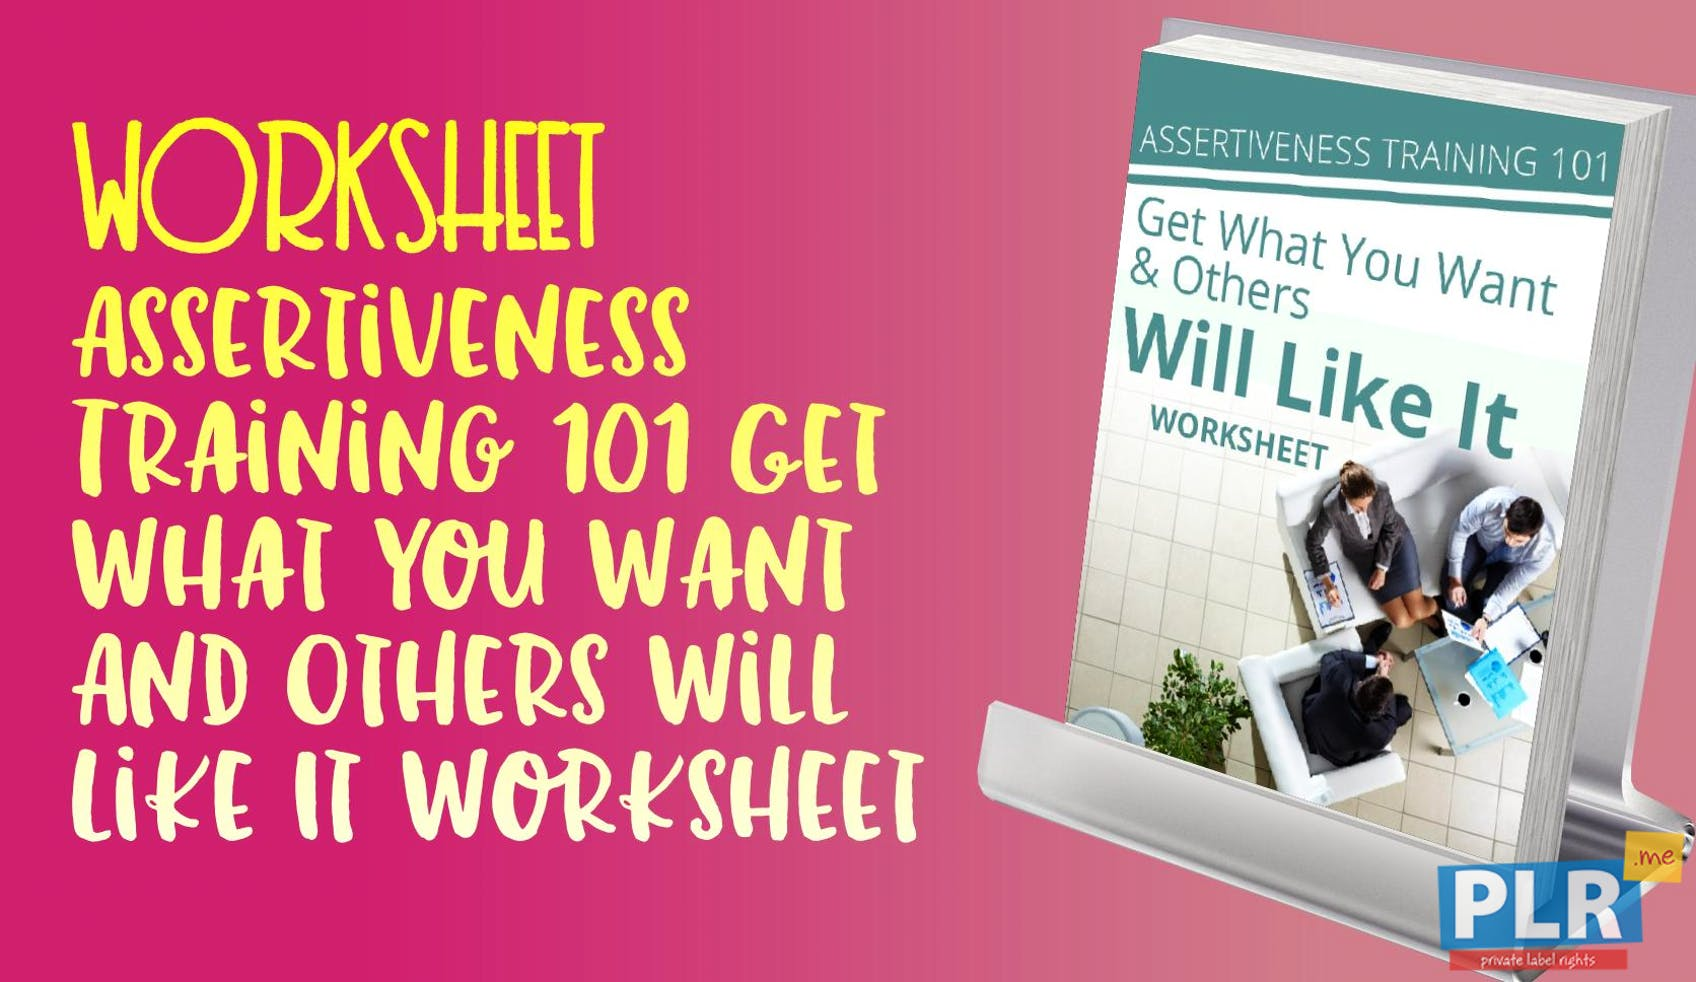 Plr Worksheets Assertiveness Training 101 Get What You Want And